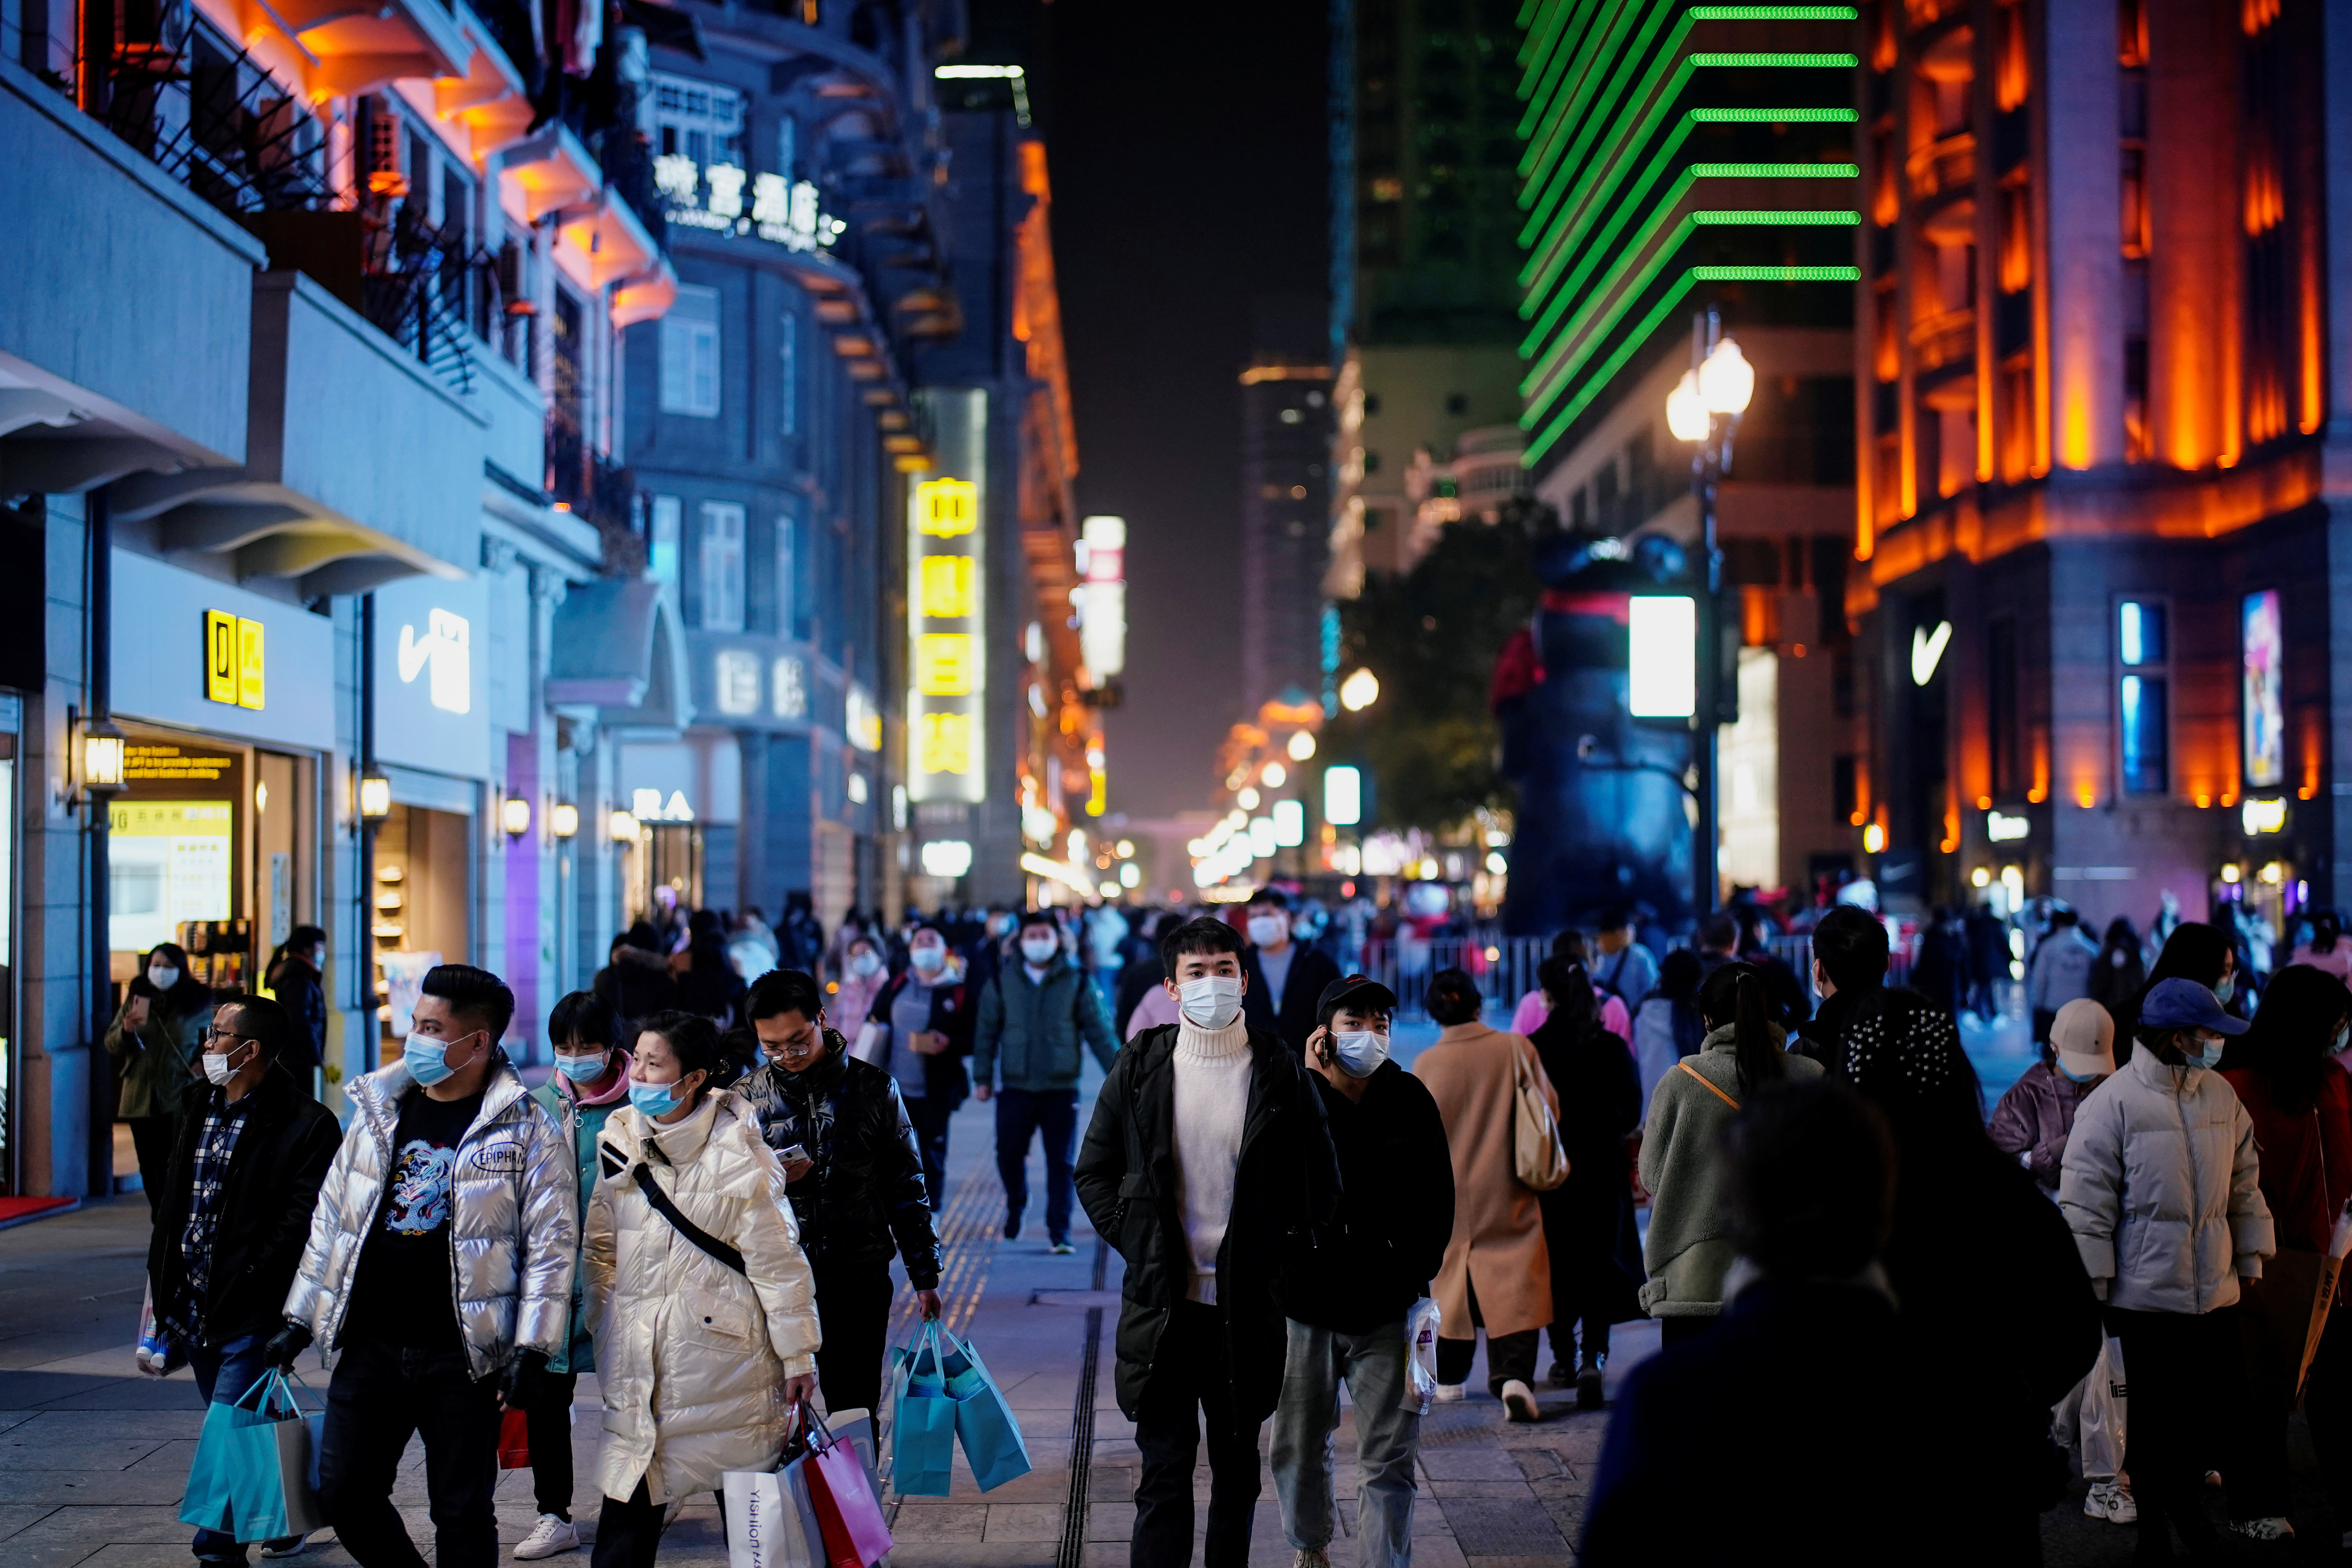 People wearing face masks are seen at a main shopping area almost a year after the global outbreak of the coronavirus disease (COVID-19) in Wuhan, Hubei province, China December 7, 2020. Picture taken December 7, 2020. REUTERS/Aly Song - RC2UIK9UPBQF